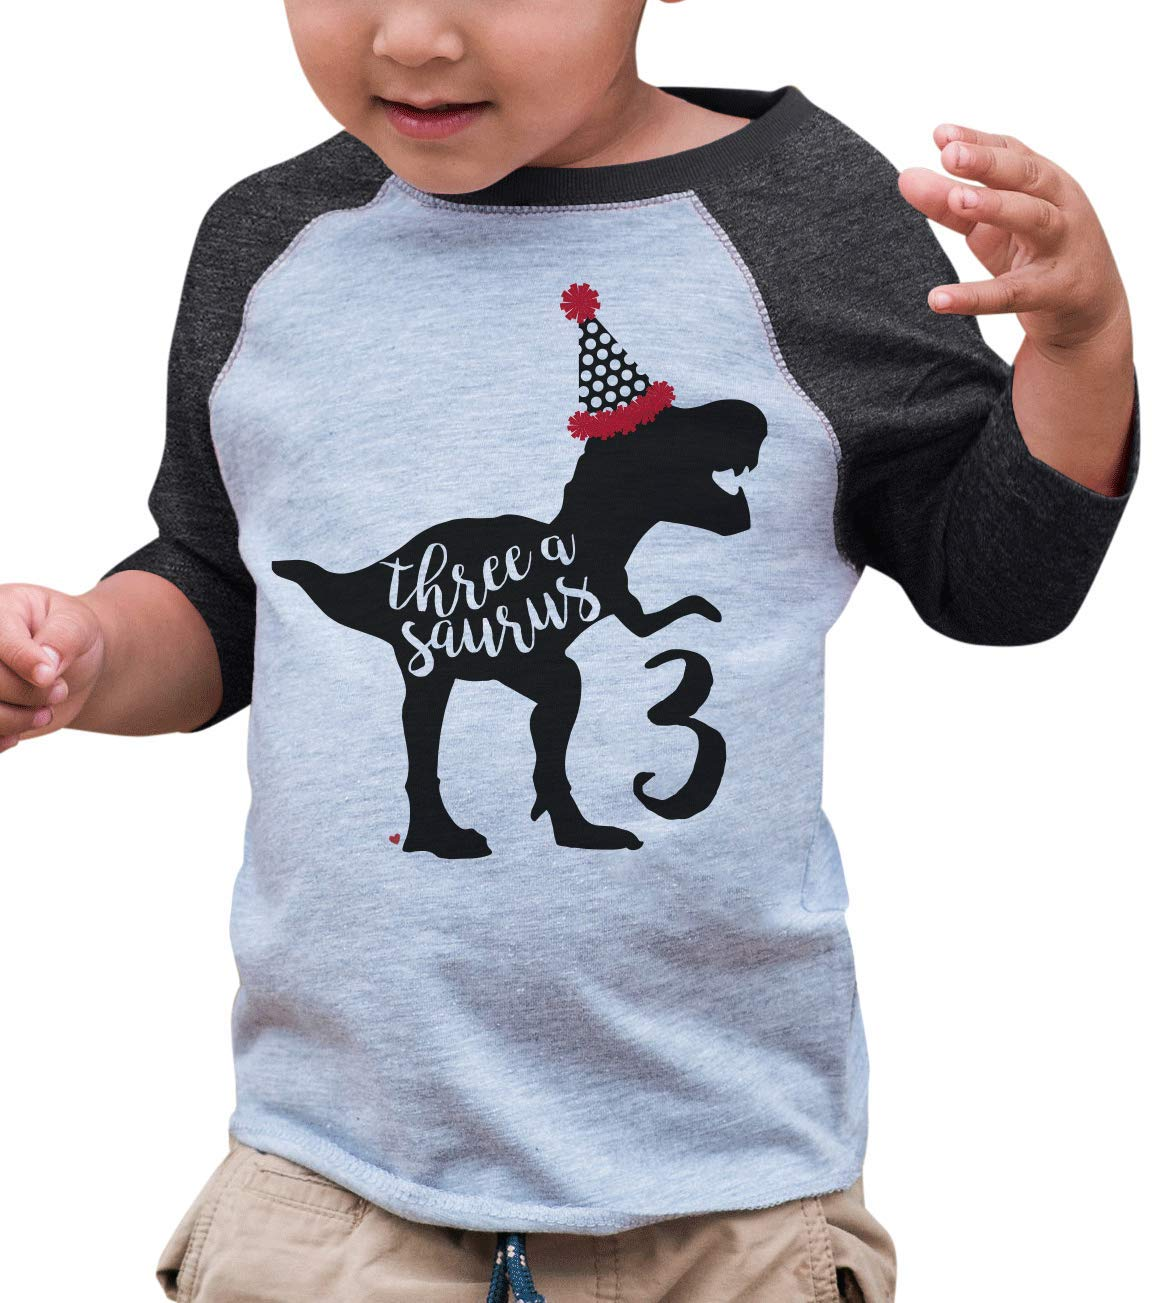 7 ate 9 Apparel ThreeBirthday Dinosaur Grey Baseball Tee 4T by 7 ate 9 Apparel